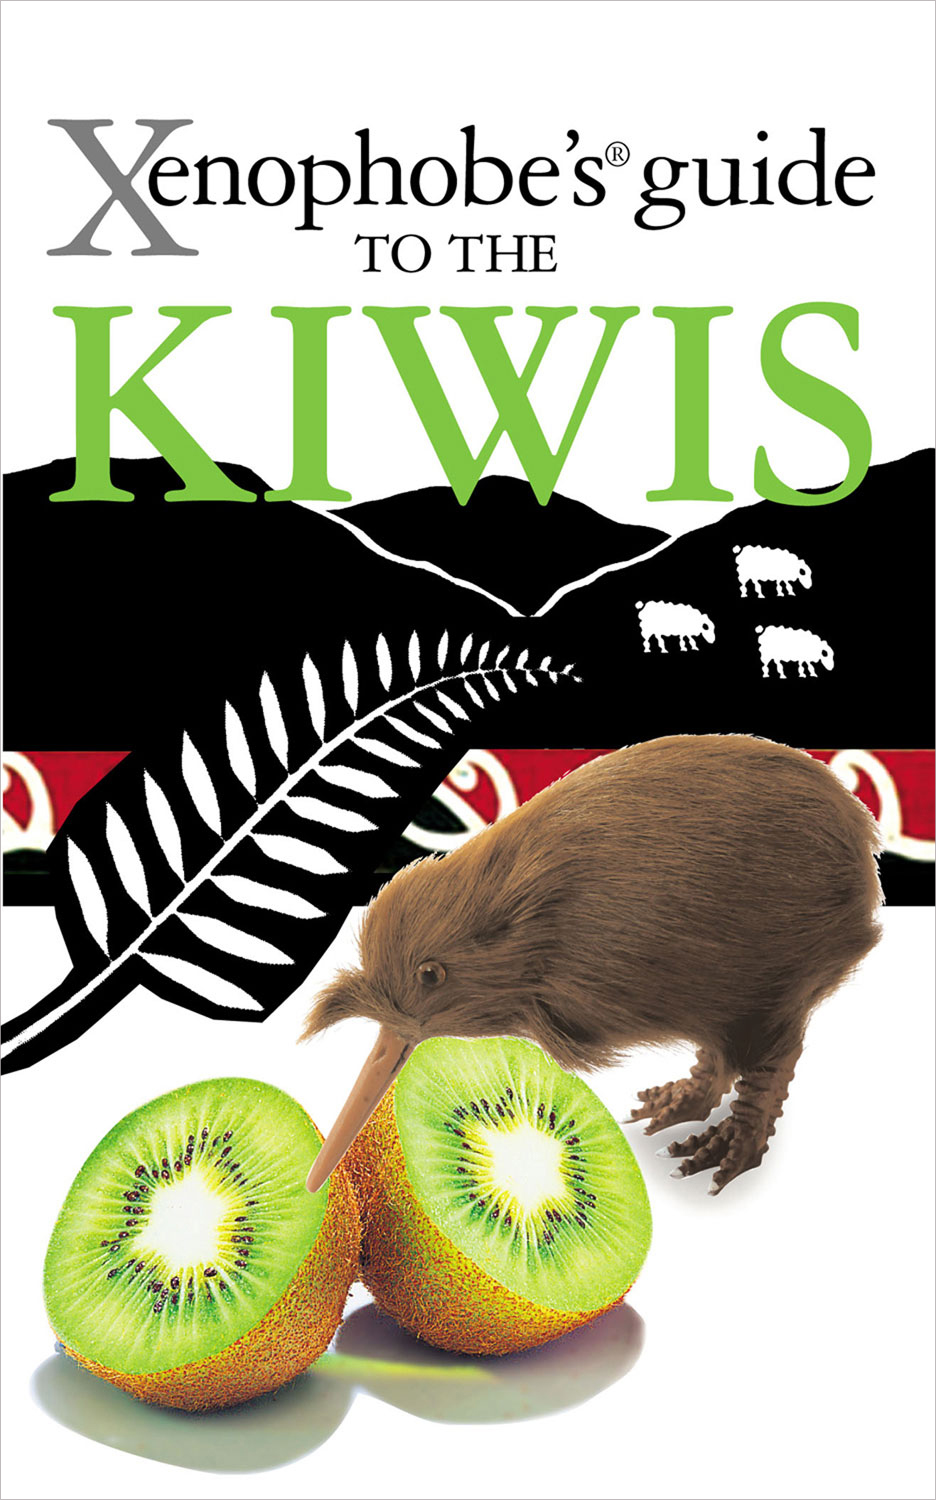 Xenophobe's Guide to the Kiwis By: Christine Cole Catley,Simon Nicholson